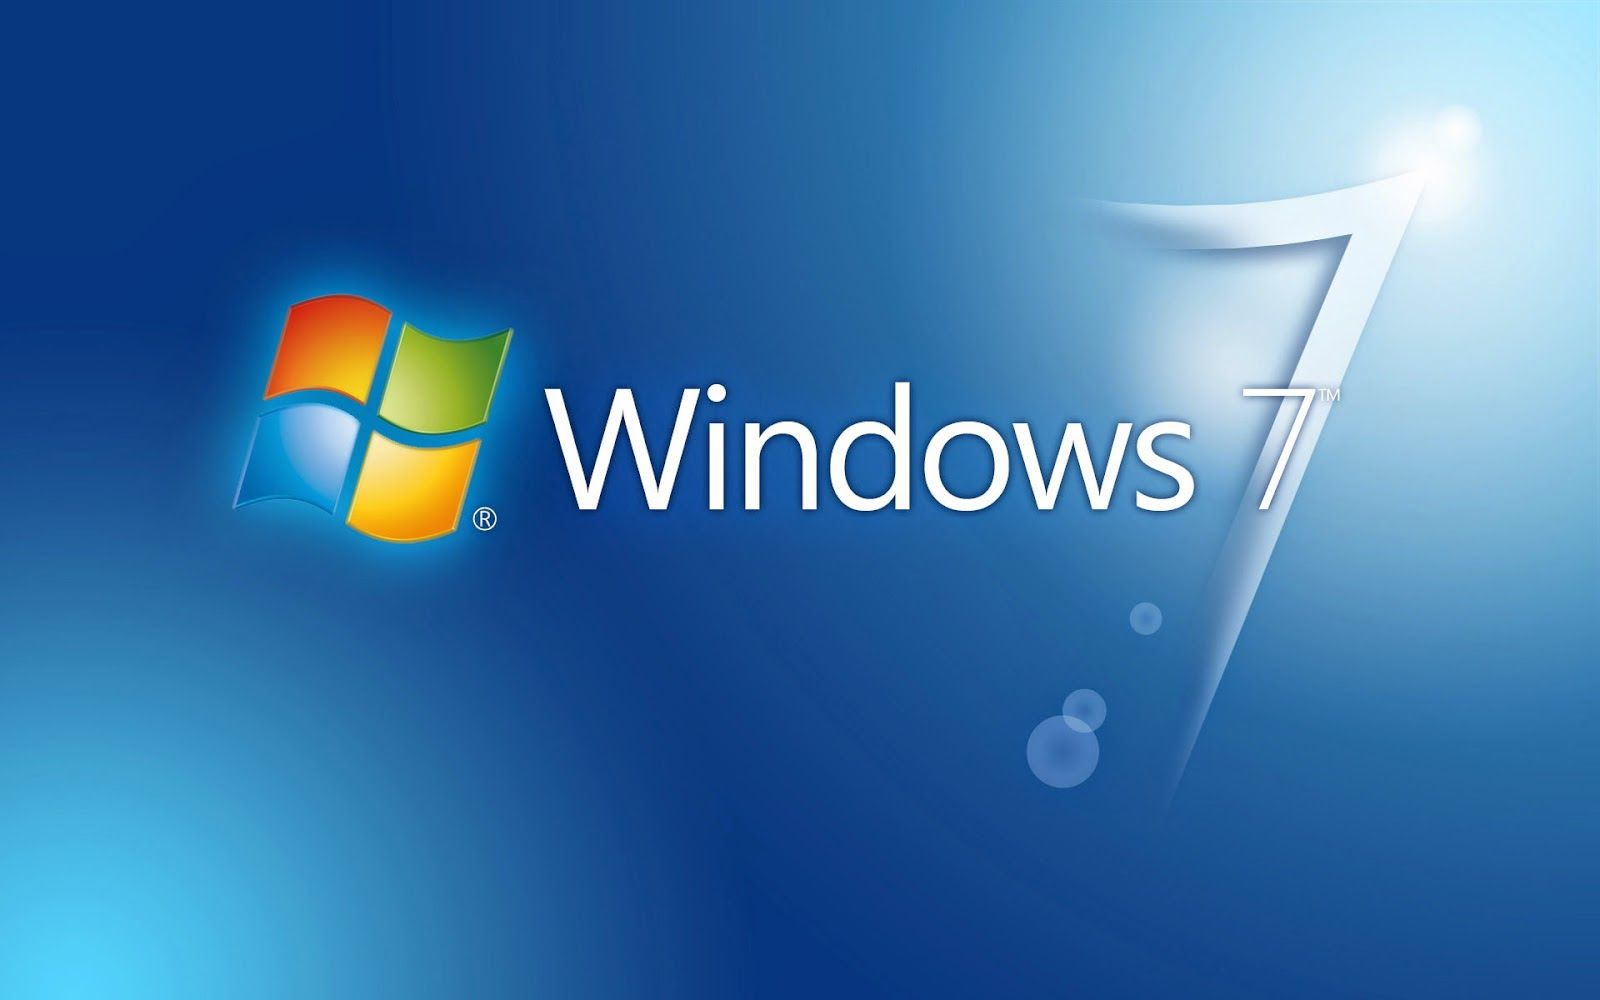 Download Windows Wallpaper Location Gallery 1600 1000 Windows Wallpapers Location 31 Wallpapers Adorab Windows 7 Themes Microsoft Windows Windows Wallpaper